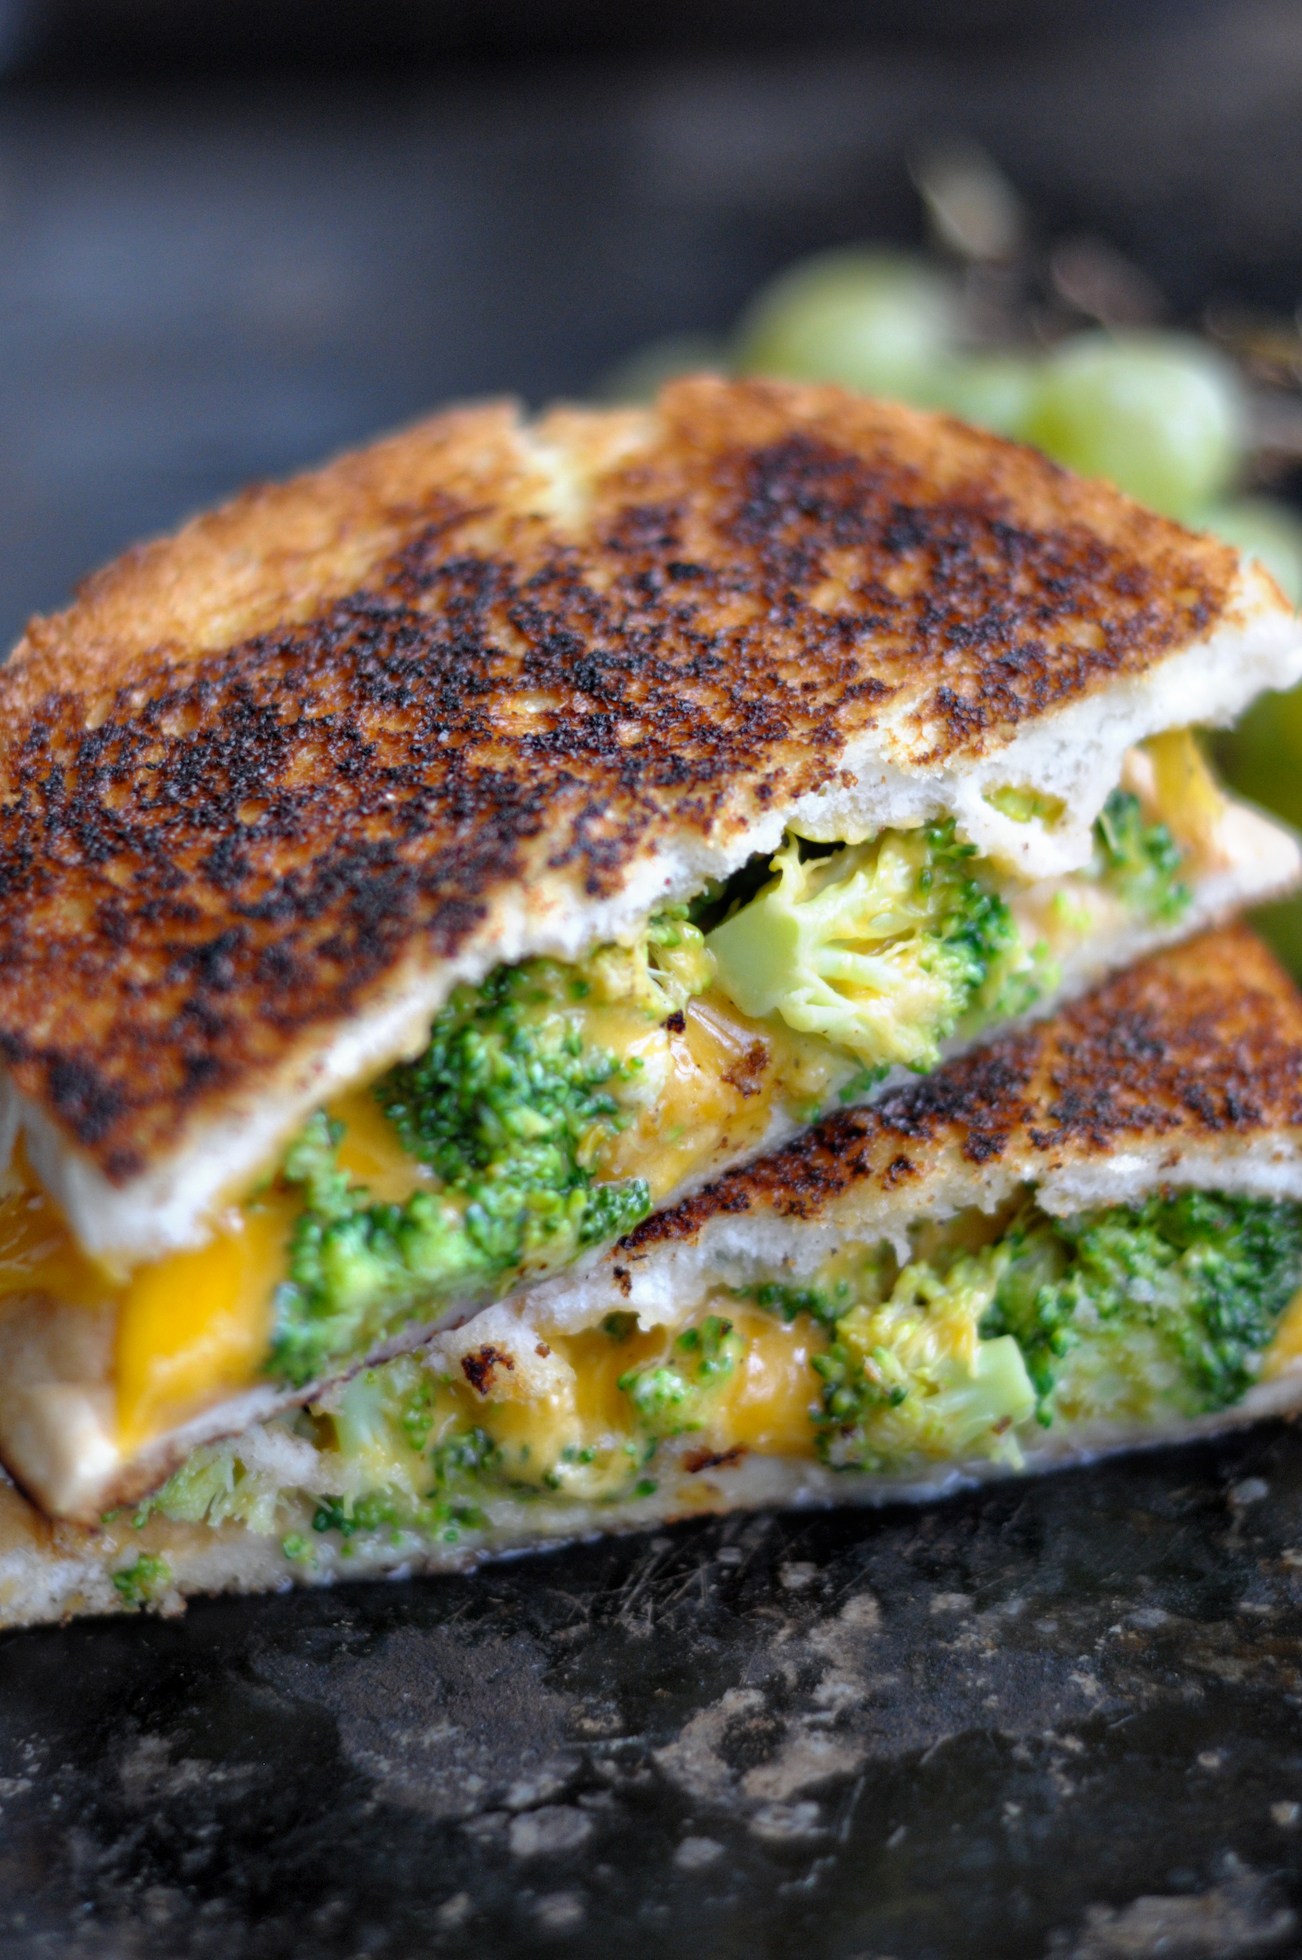 broccoli-cheddar-sandwich-2